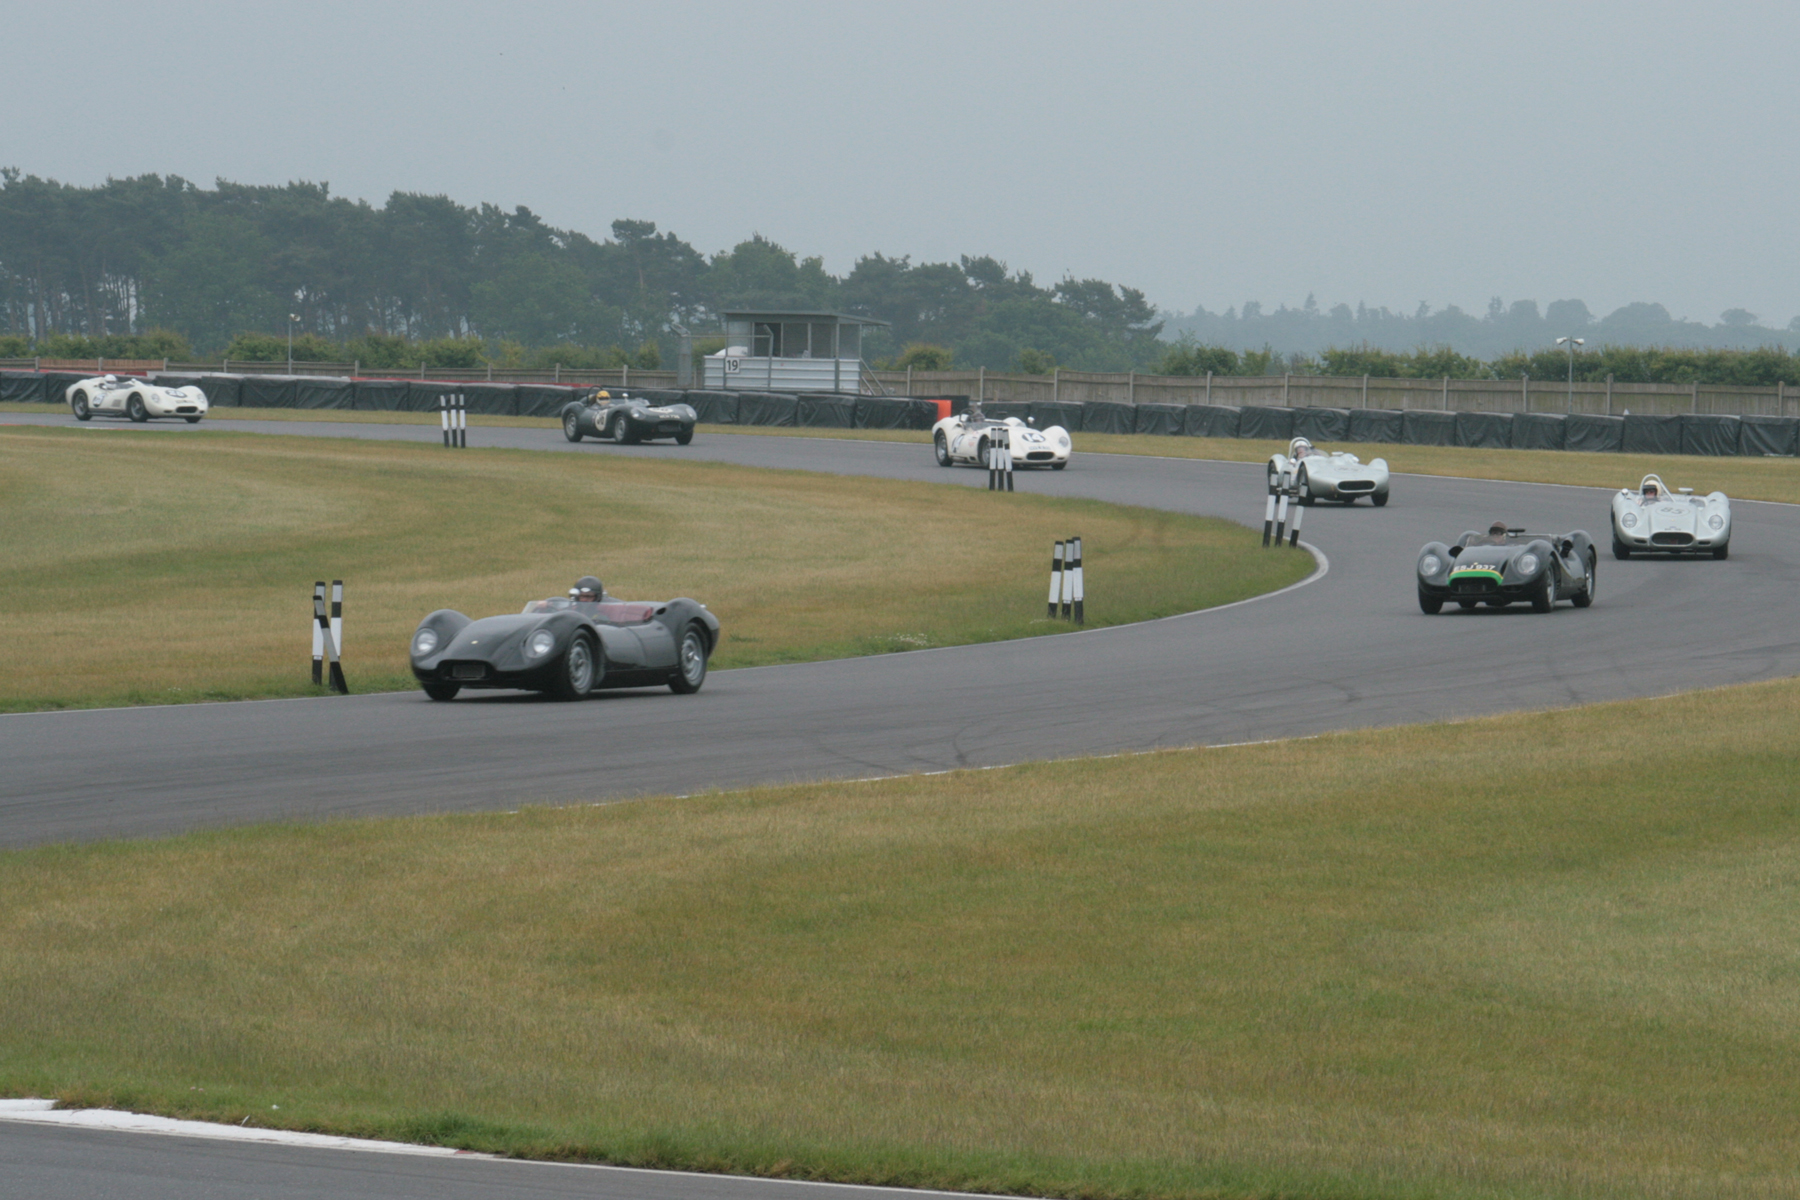 The Lister Demonstration run led by two new Knobblies from the current Lister Car Company  Photo - John Turner